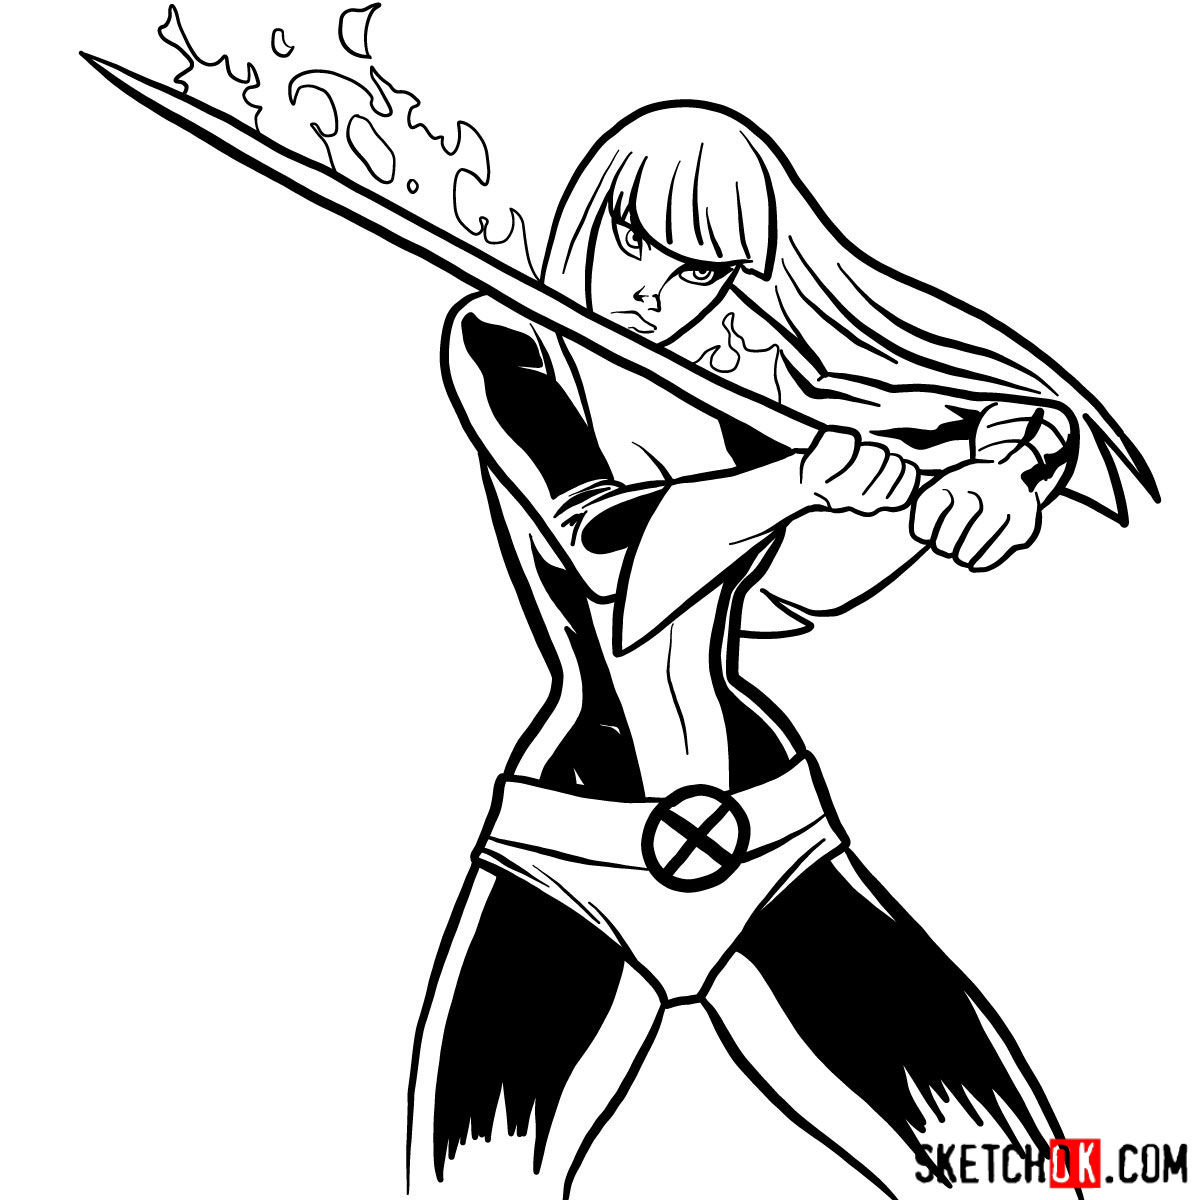 How to draw Magik, a mutant from X-Men - step 12